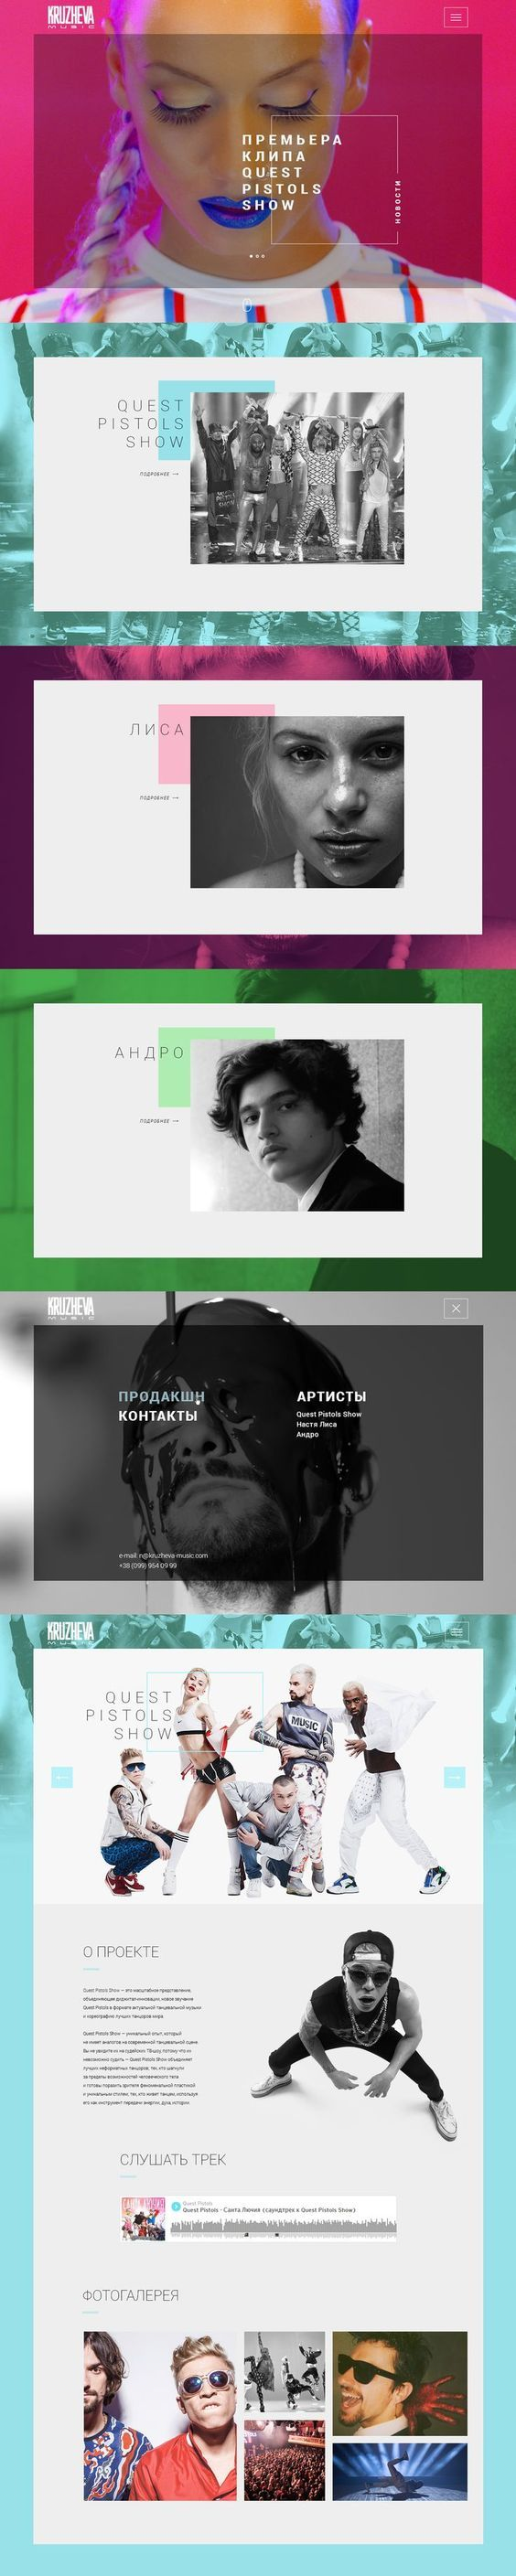 Kruzheva Music Web Design on Behance | Fivestar Branding – Design and Branding Agency & Inspiration Gallery